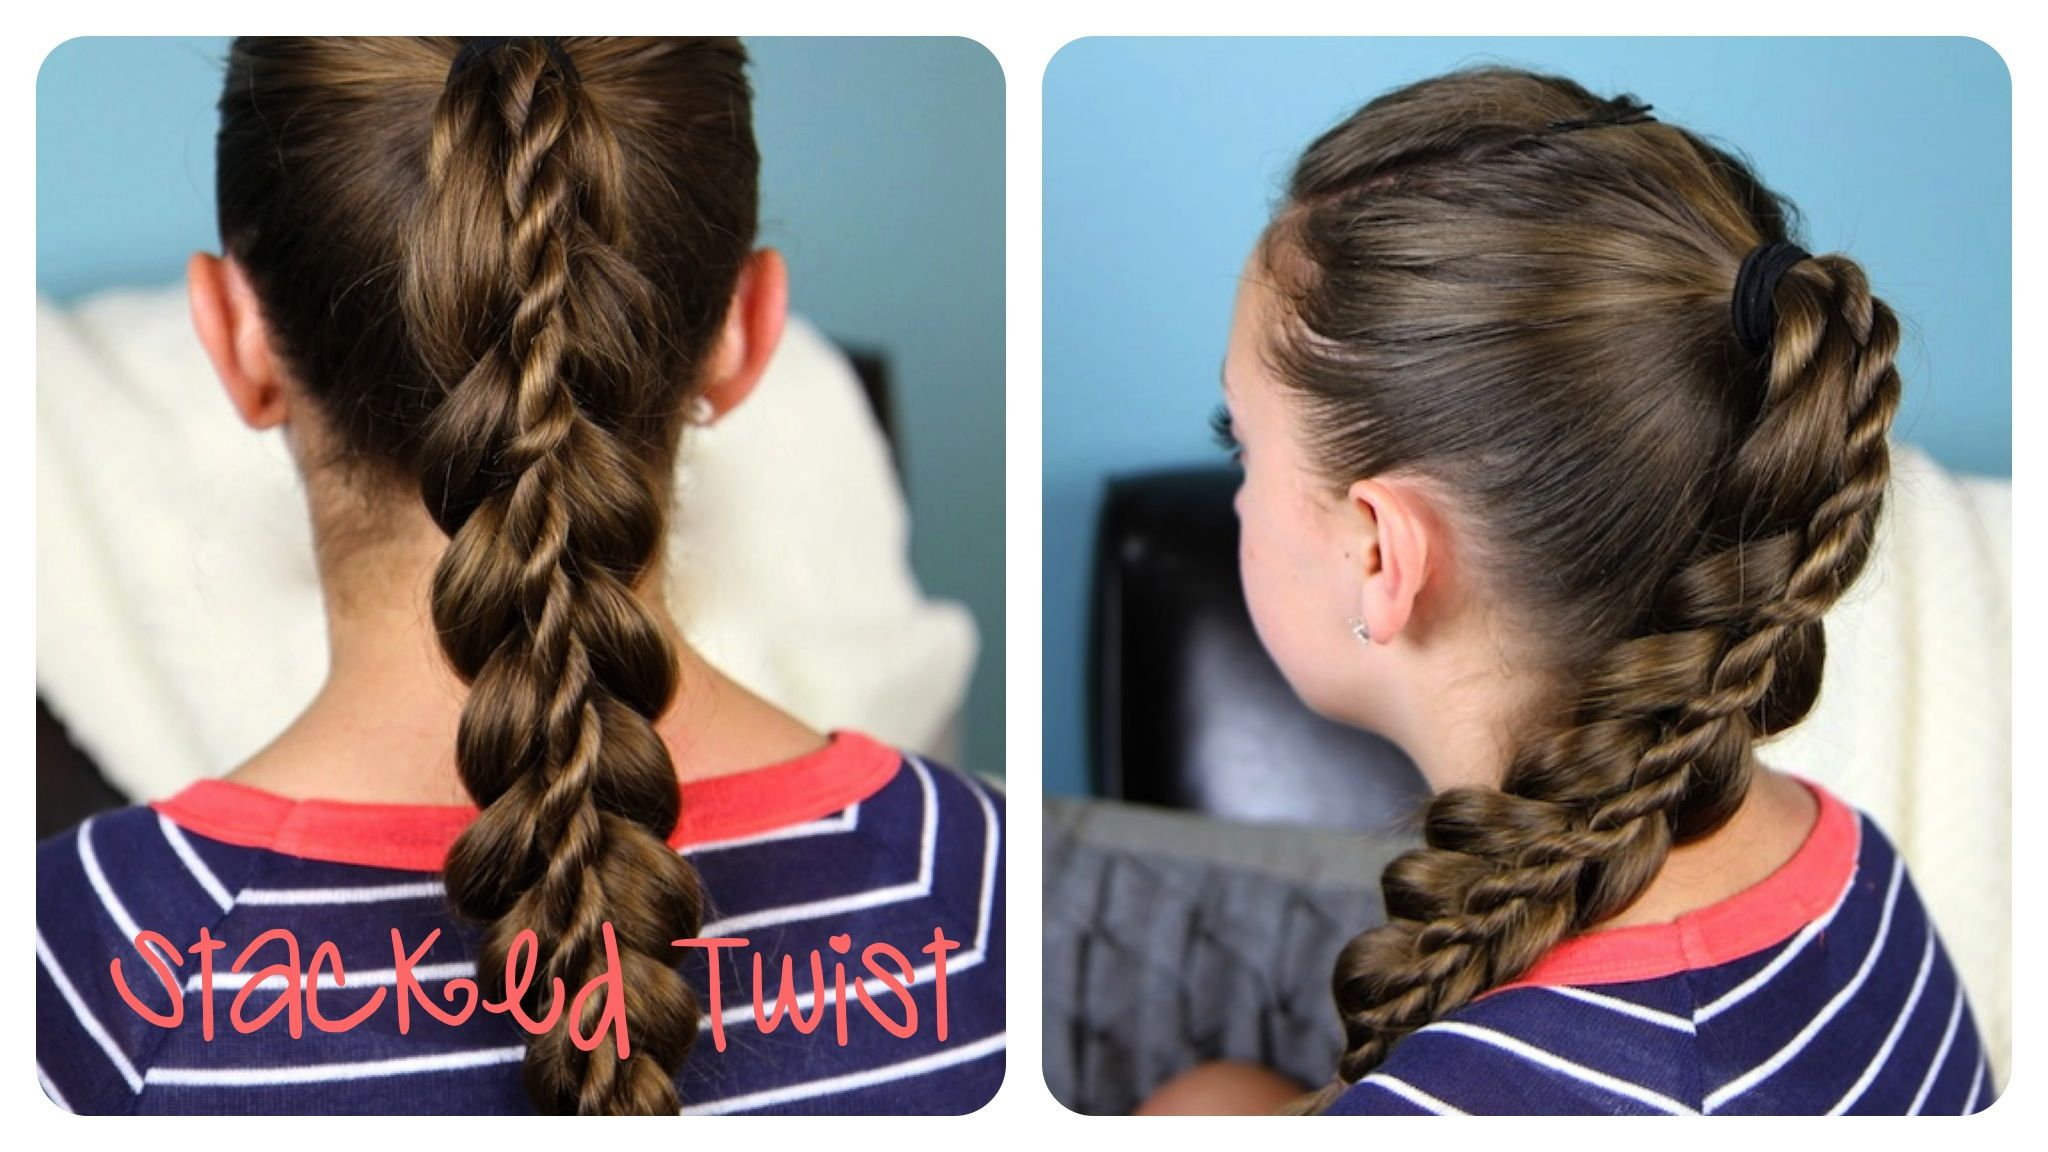 Cute Braid Hairstyles Entrancing Rope Braids  Cute Girls Hairstyles  Page 2  Cool Hairstyles